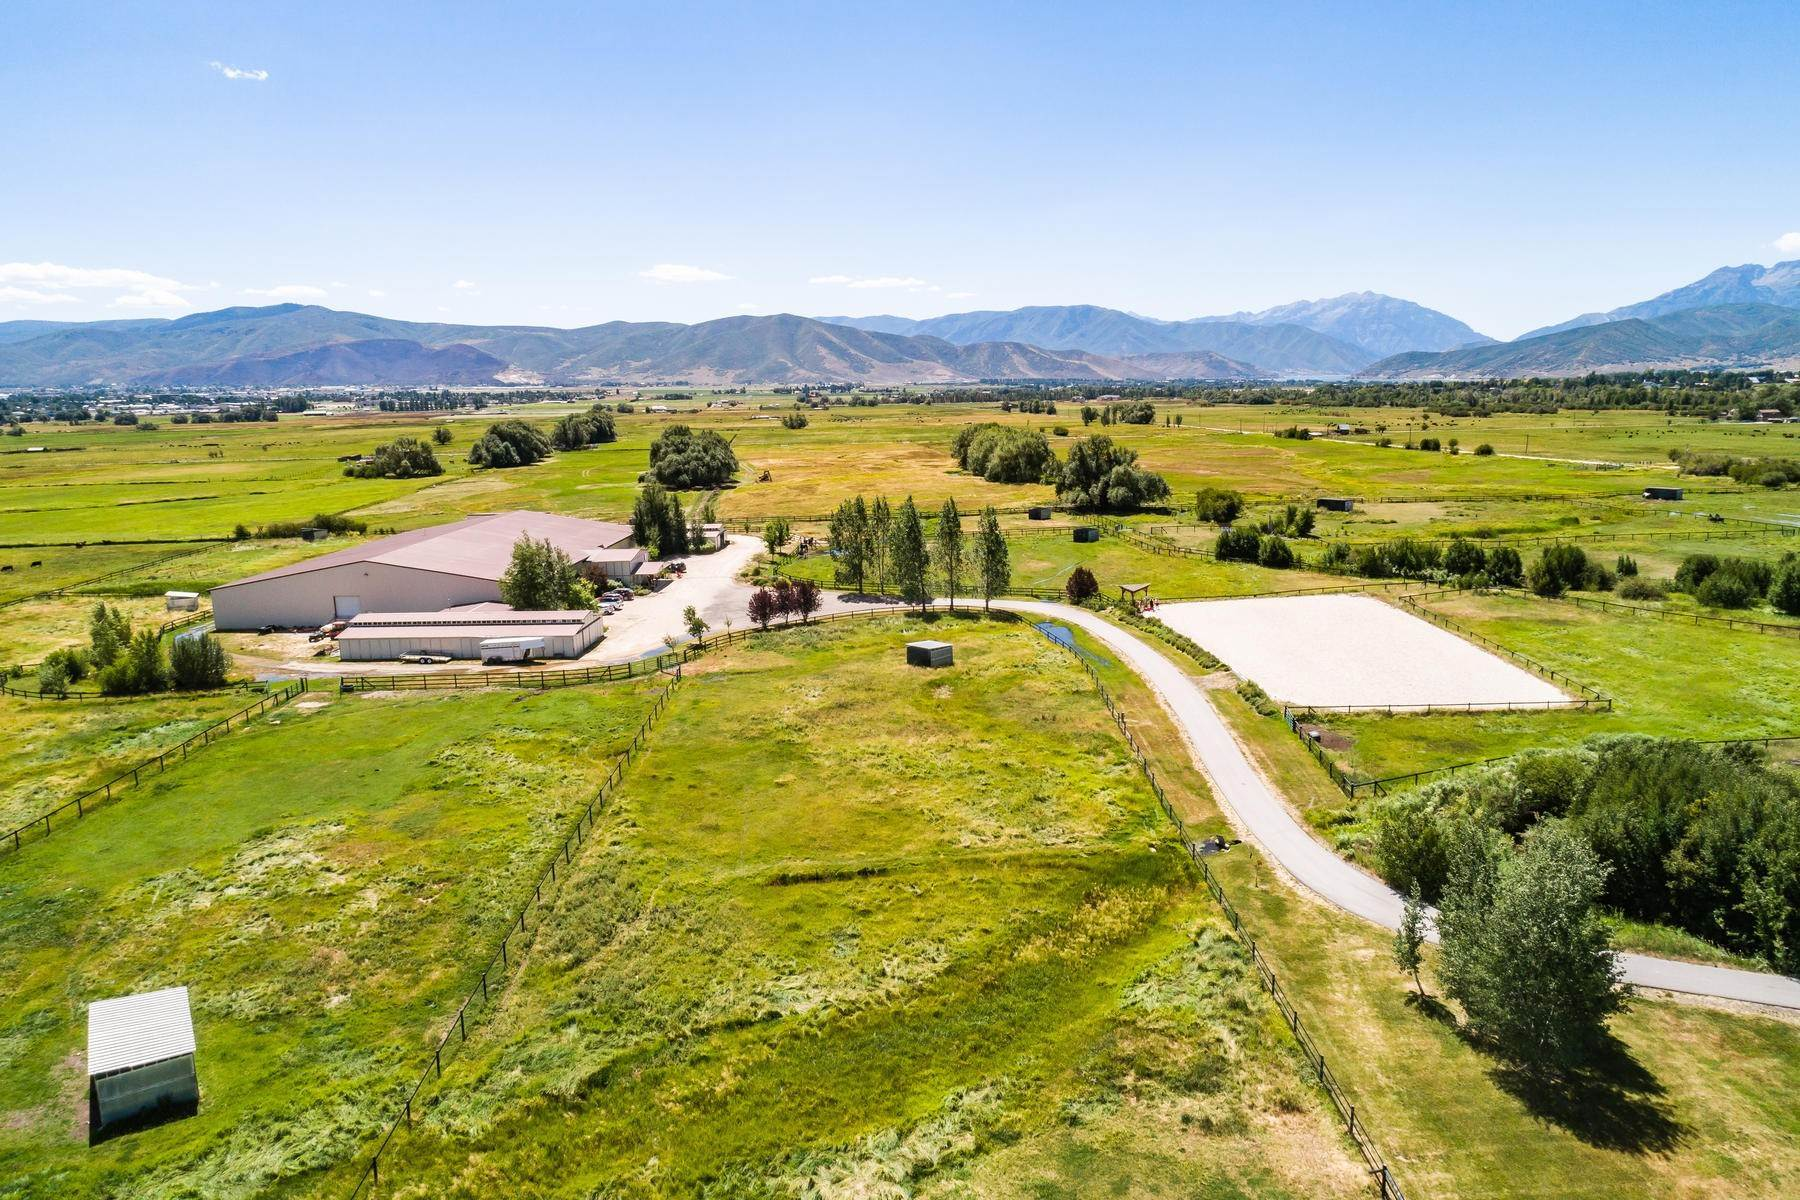 Farm and Ranch Properties for Sale at Shamans Circle Ranch—61 Acres with an Indoor Riding Facility in Heber 1336 N 1750 W Heber City, Utah 84032 United States